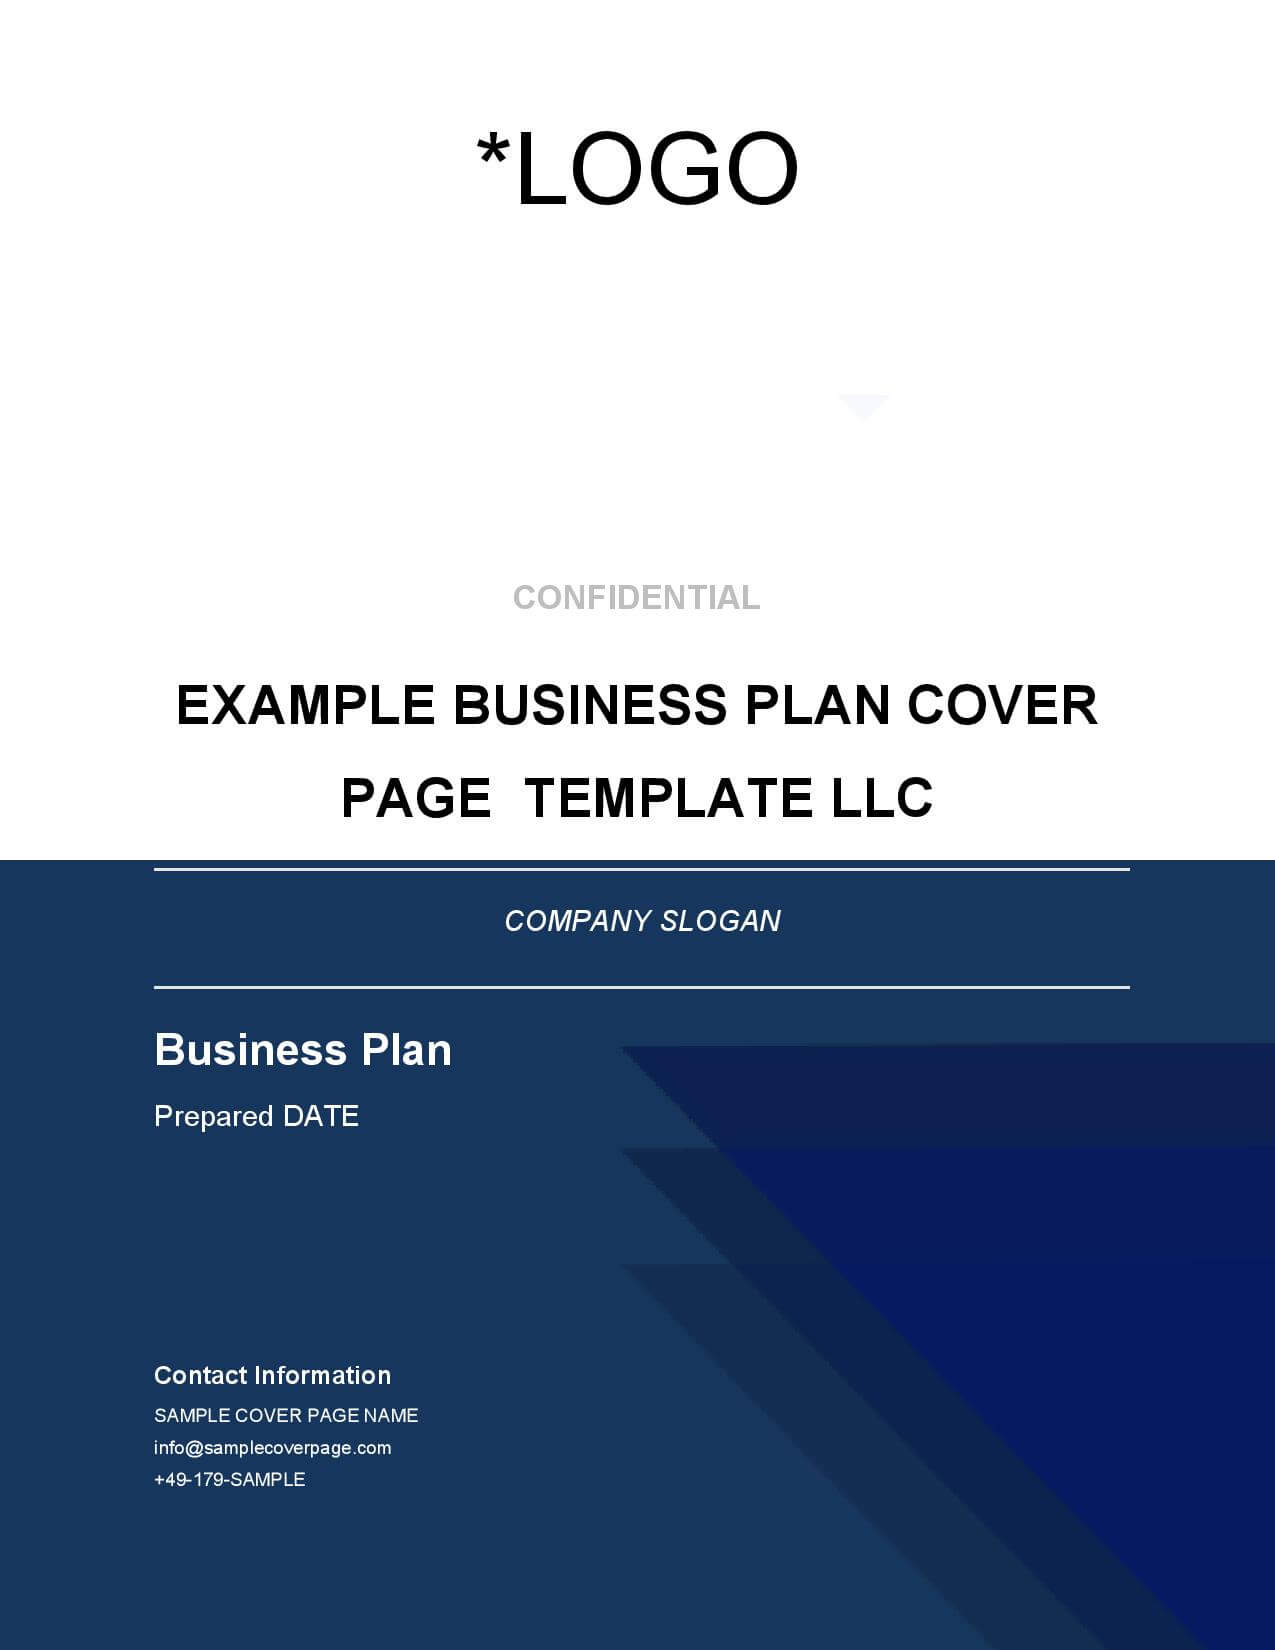 Business Plan Cover Page Template BrainHive Business Planning - Business plan title page template